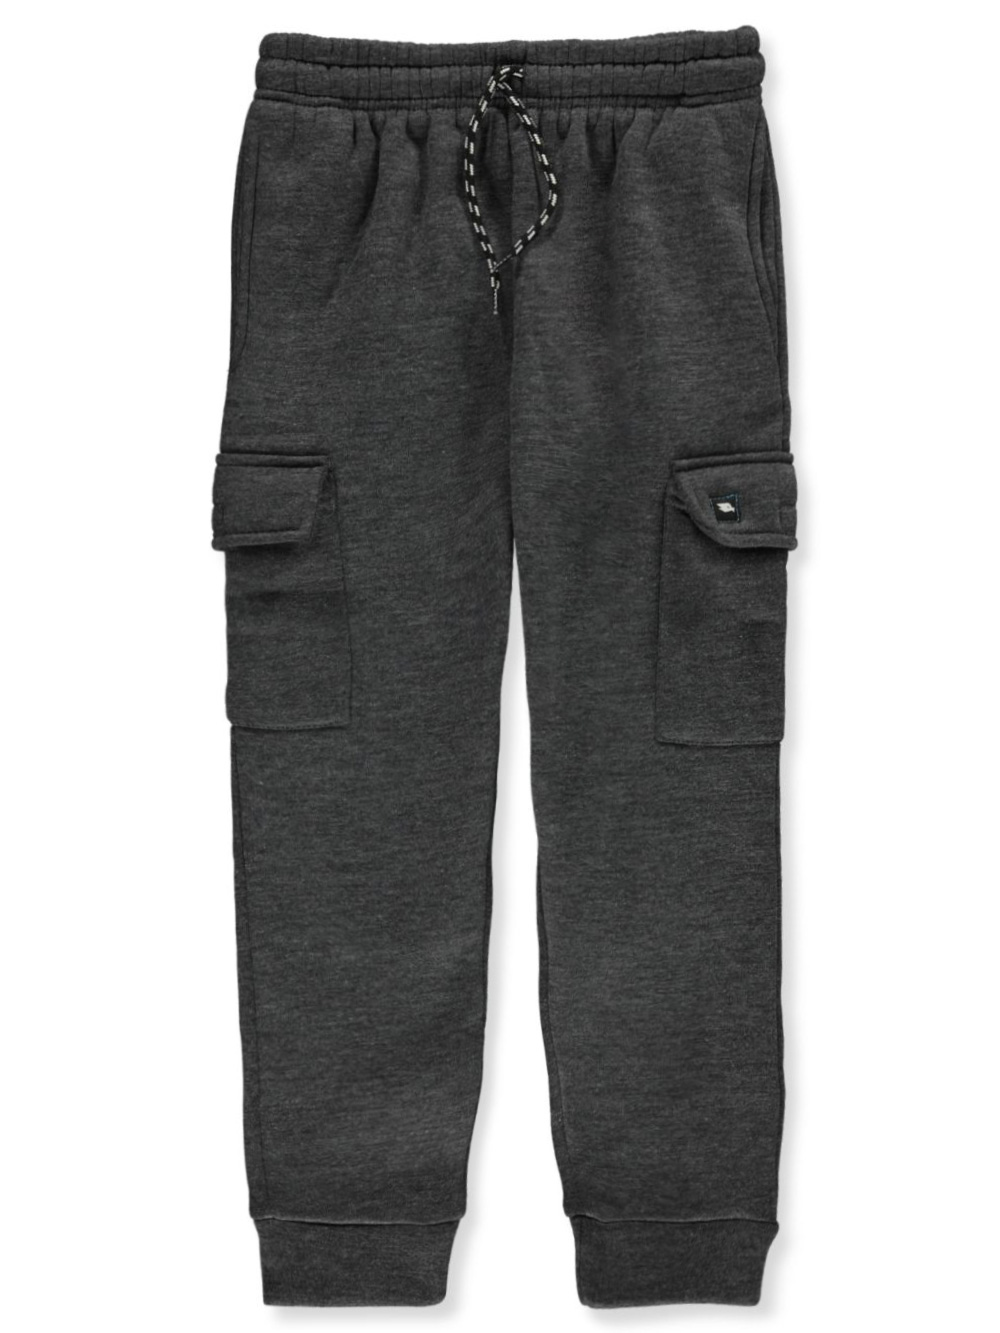 Boys Heather Gray Pants